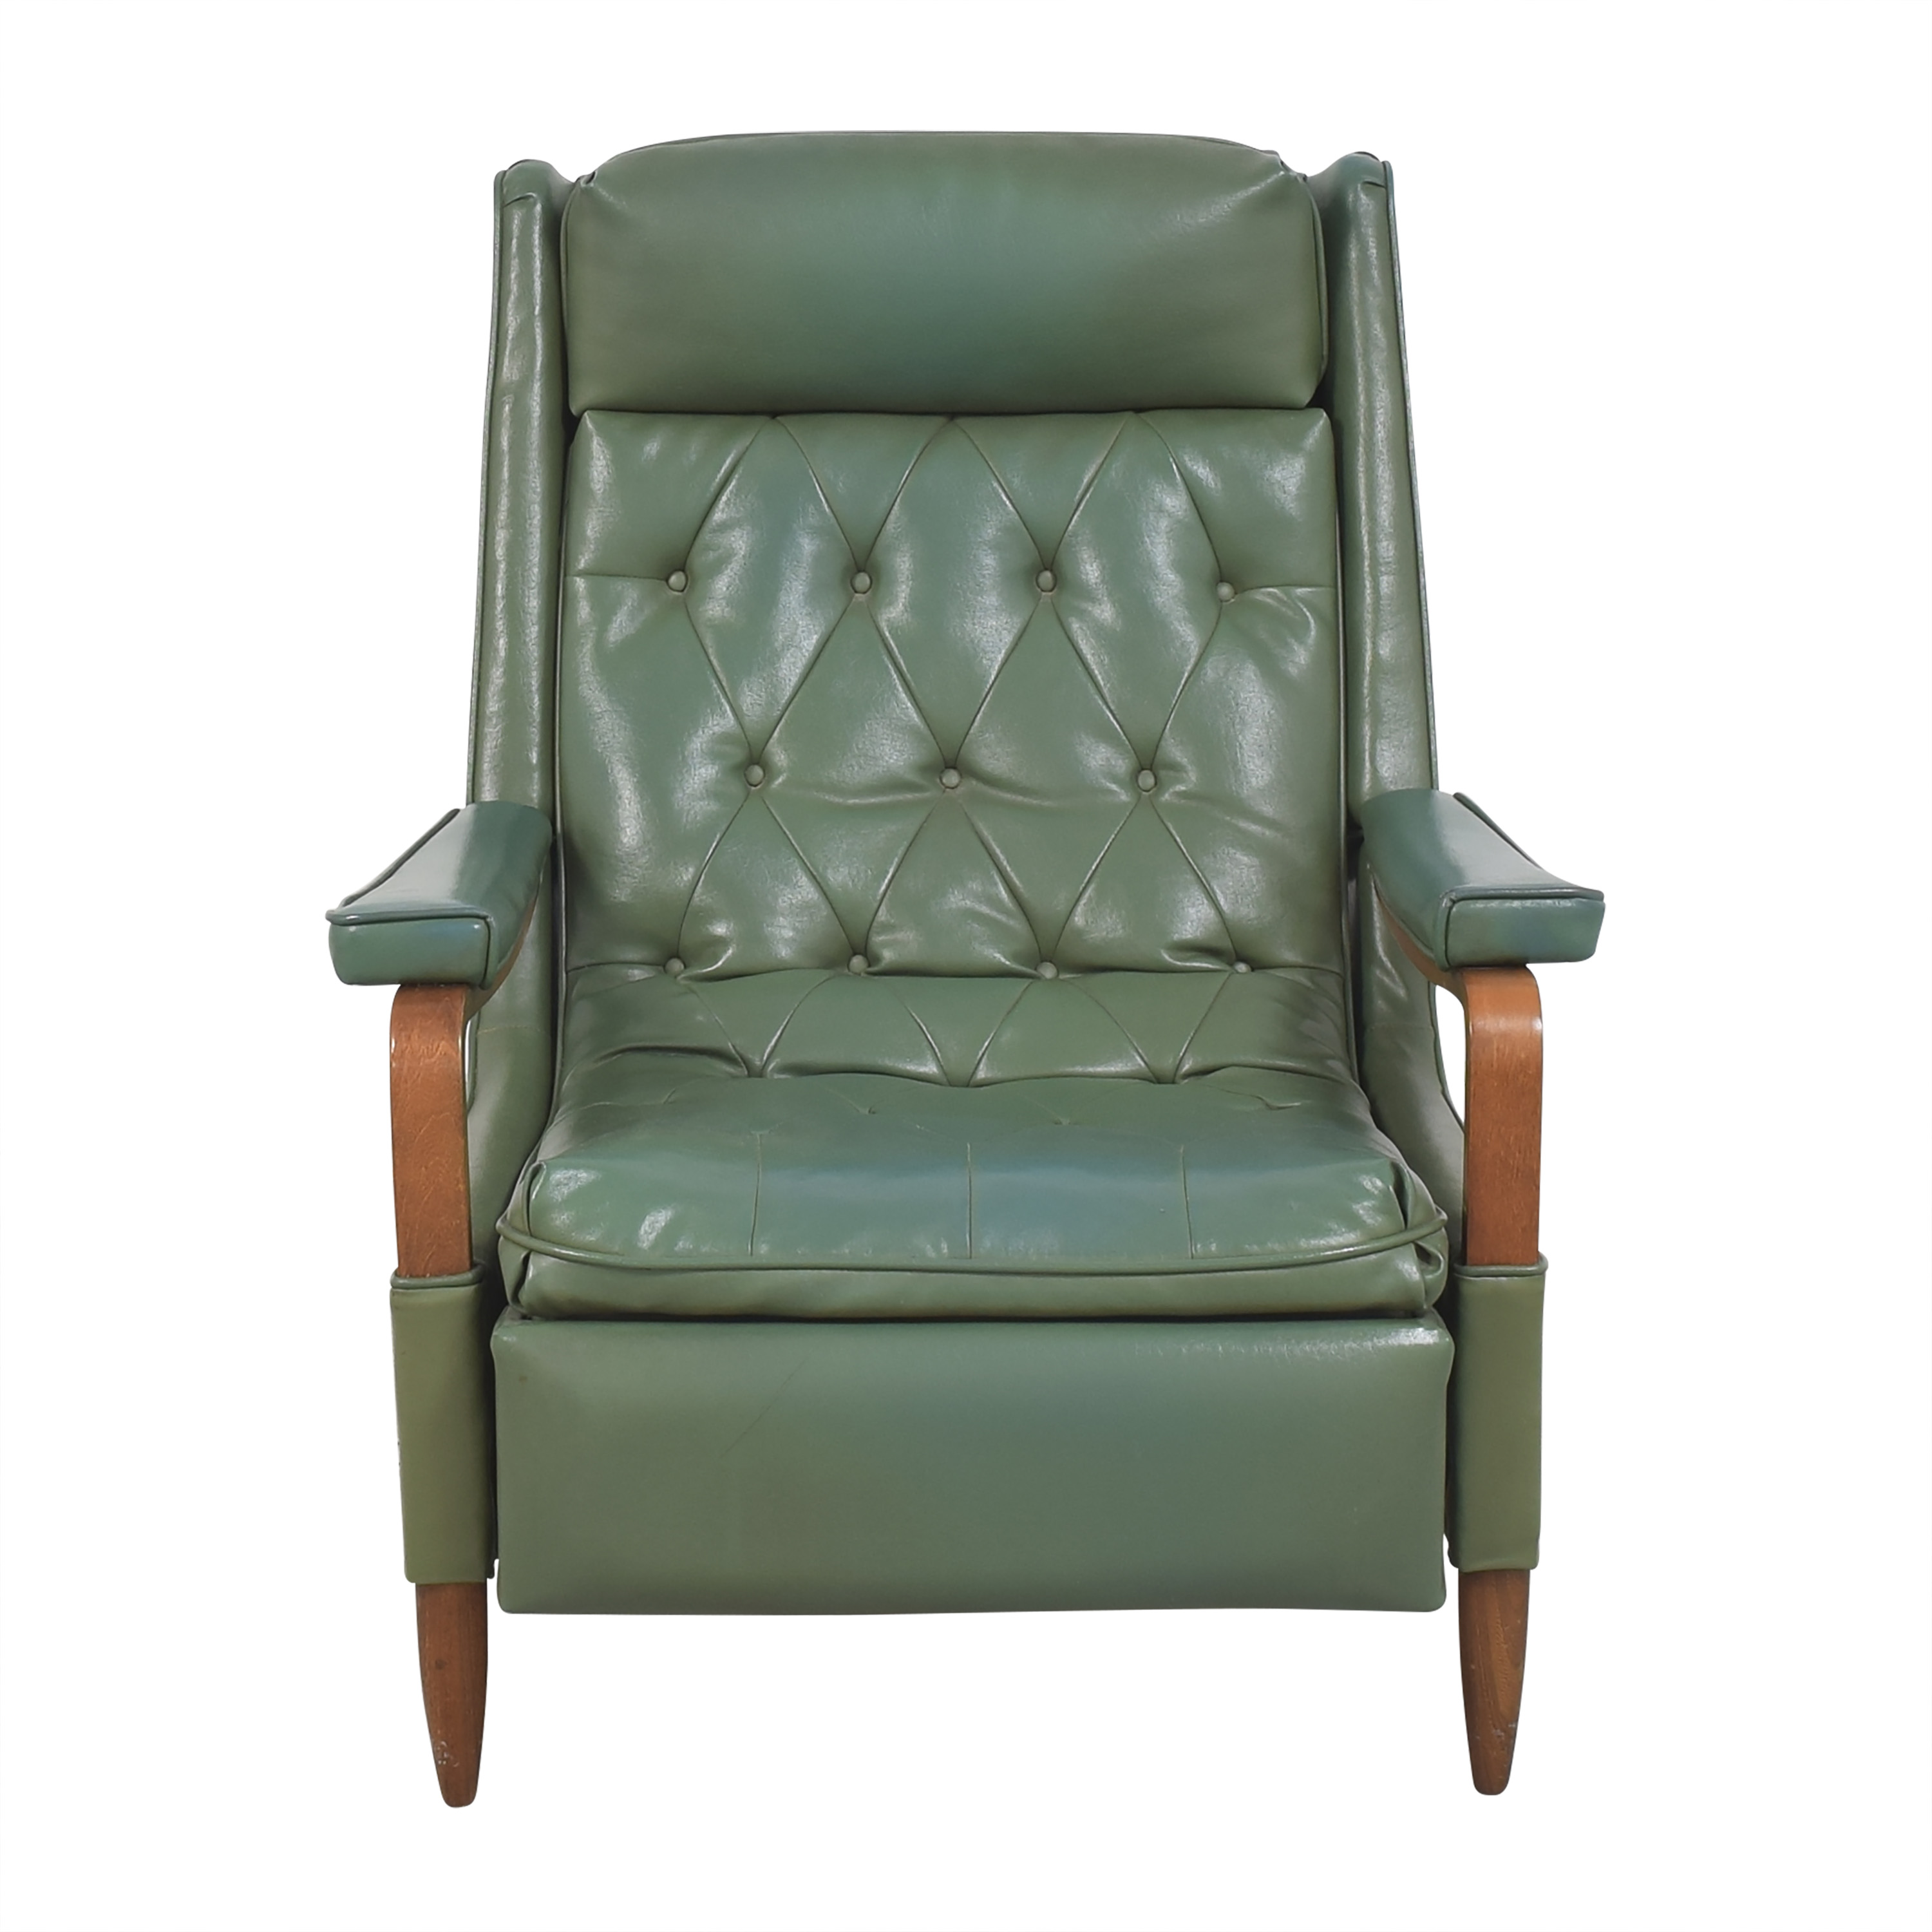 shop Futorian Stratorester Recliner Stratorester